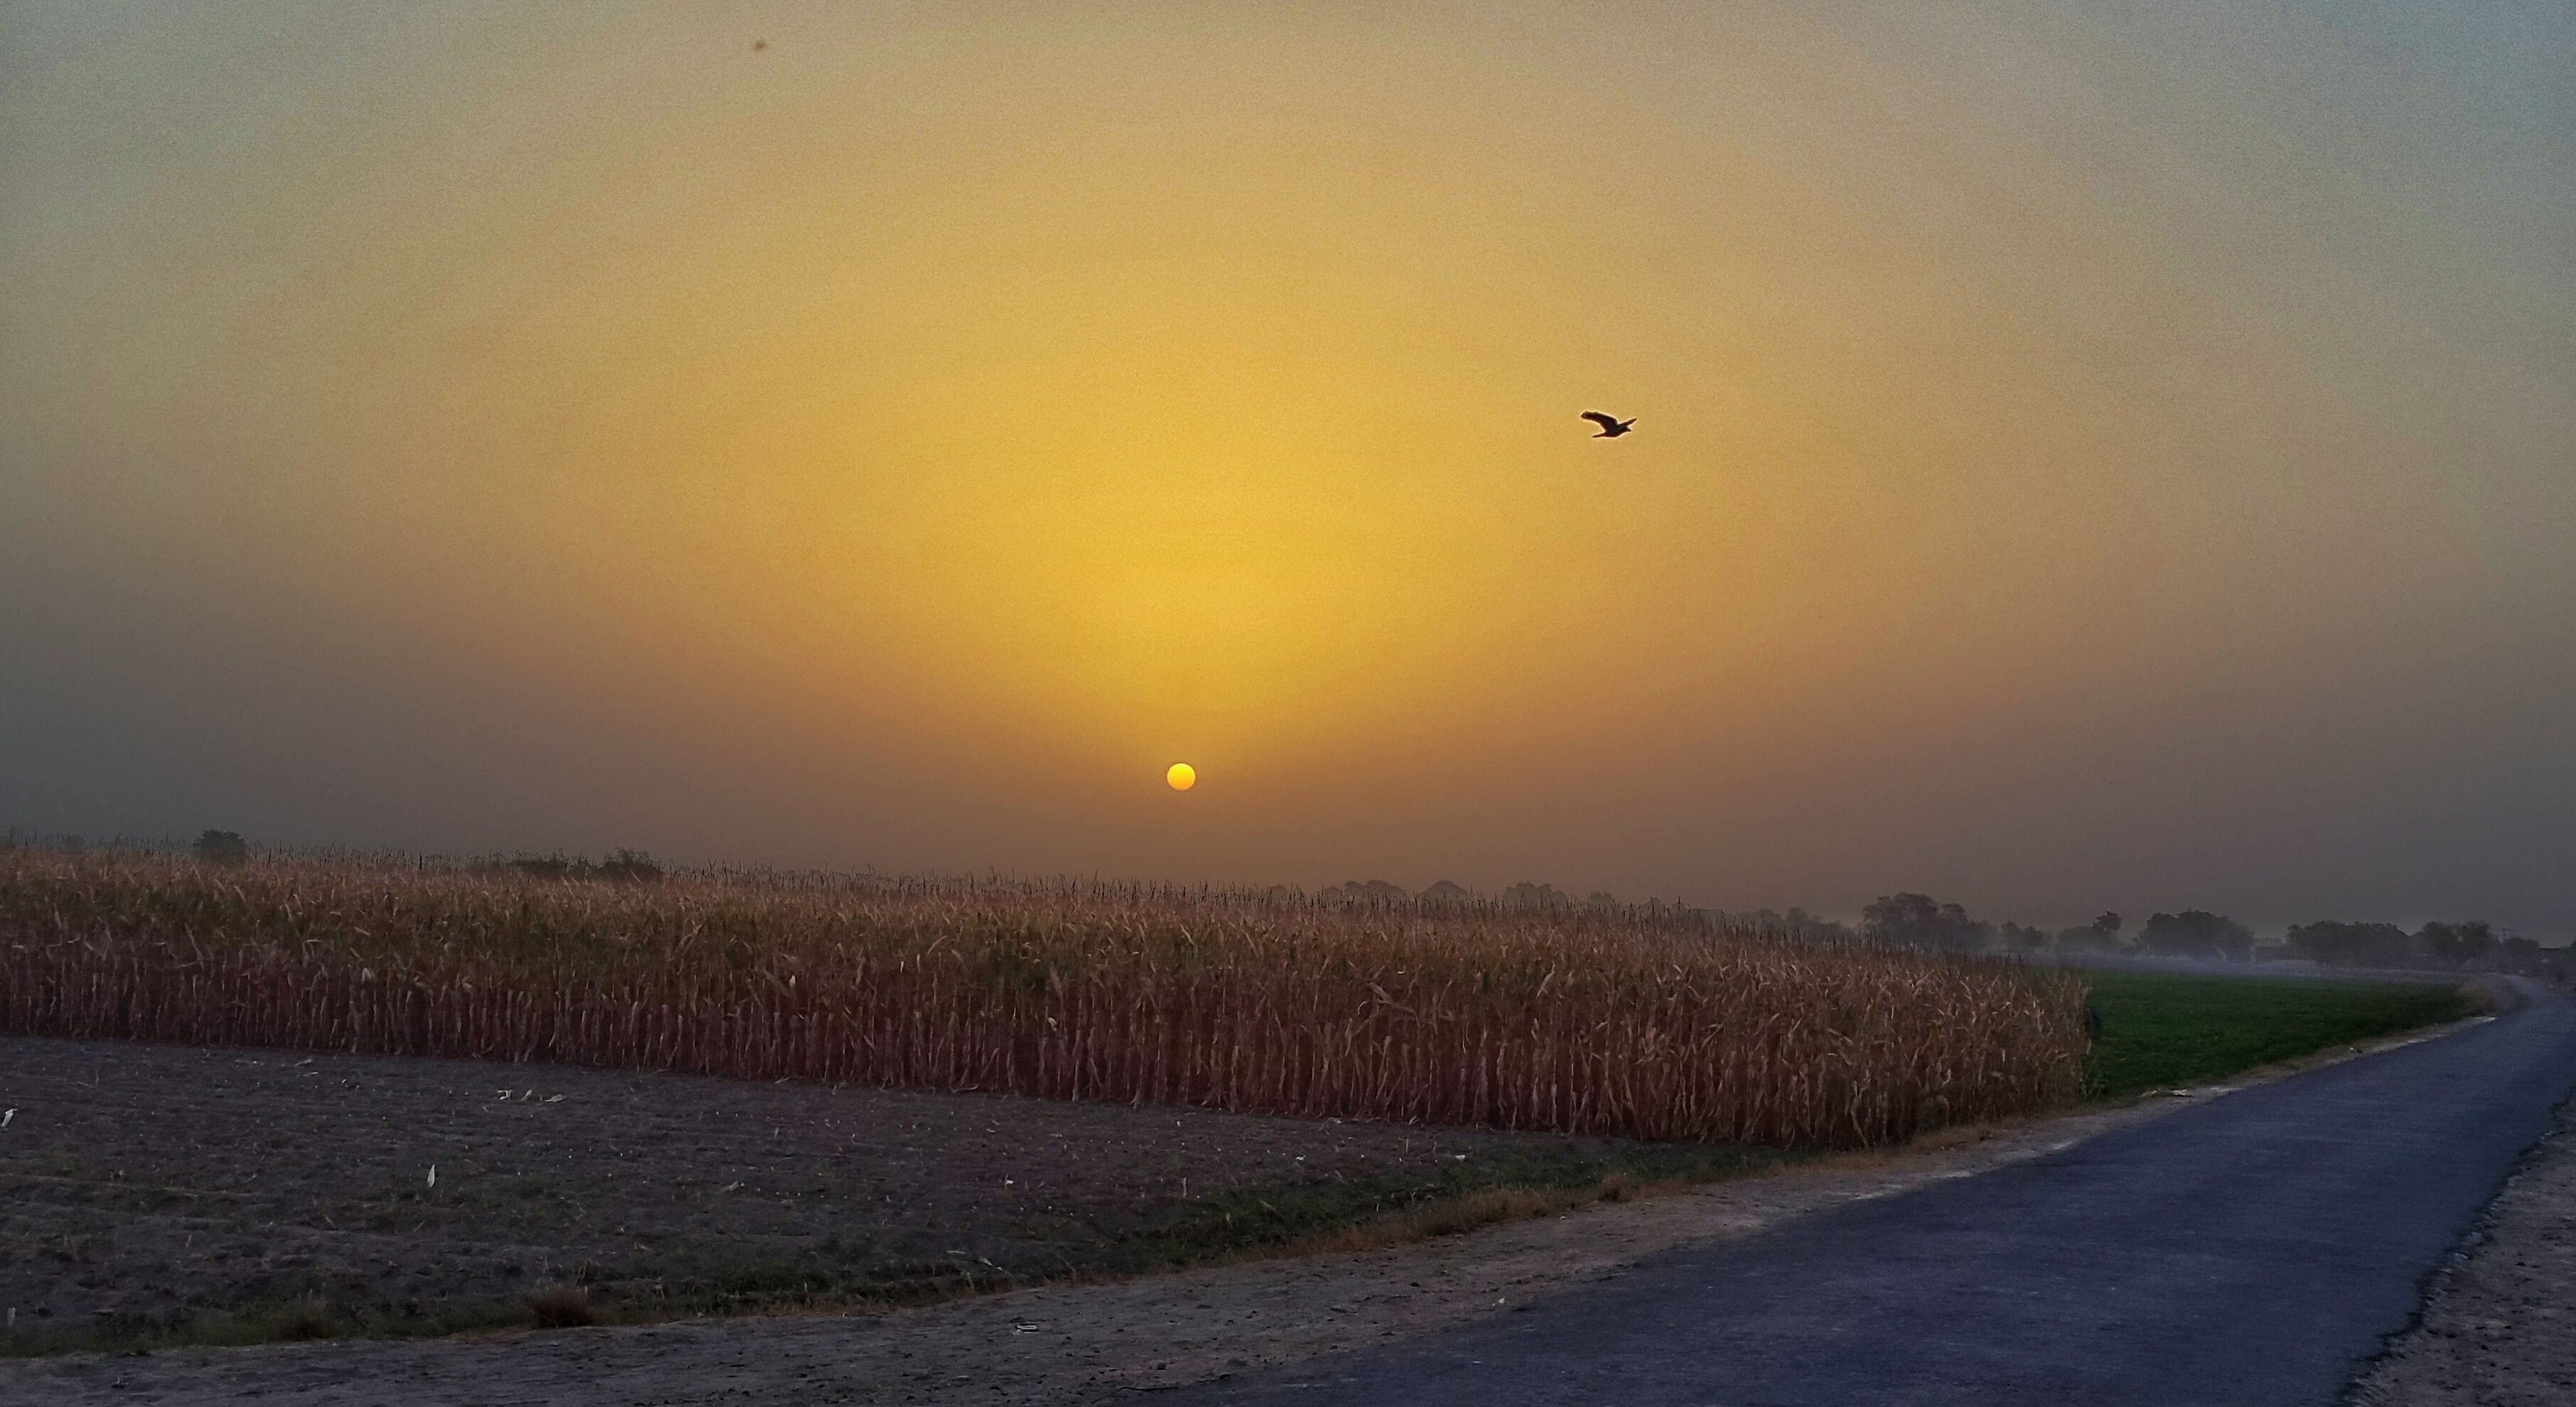 sunset, tranquil scene, sun, tranquility, scenics, landscape, beauty in nature, nature, orange color, sky, field, idyllic, copy space, road, horizon over land, flying, transportation, sunlight, outdoors, no people